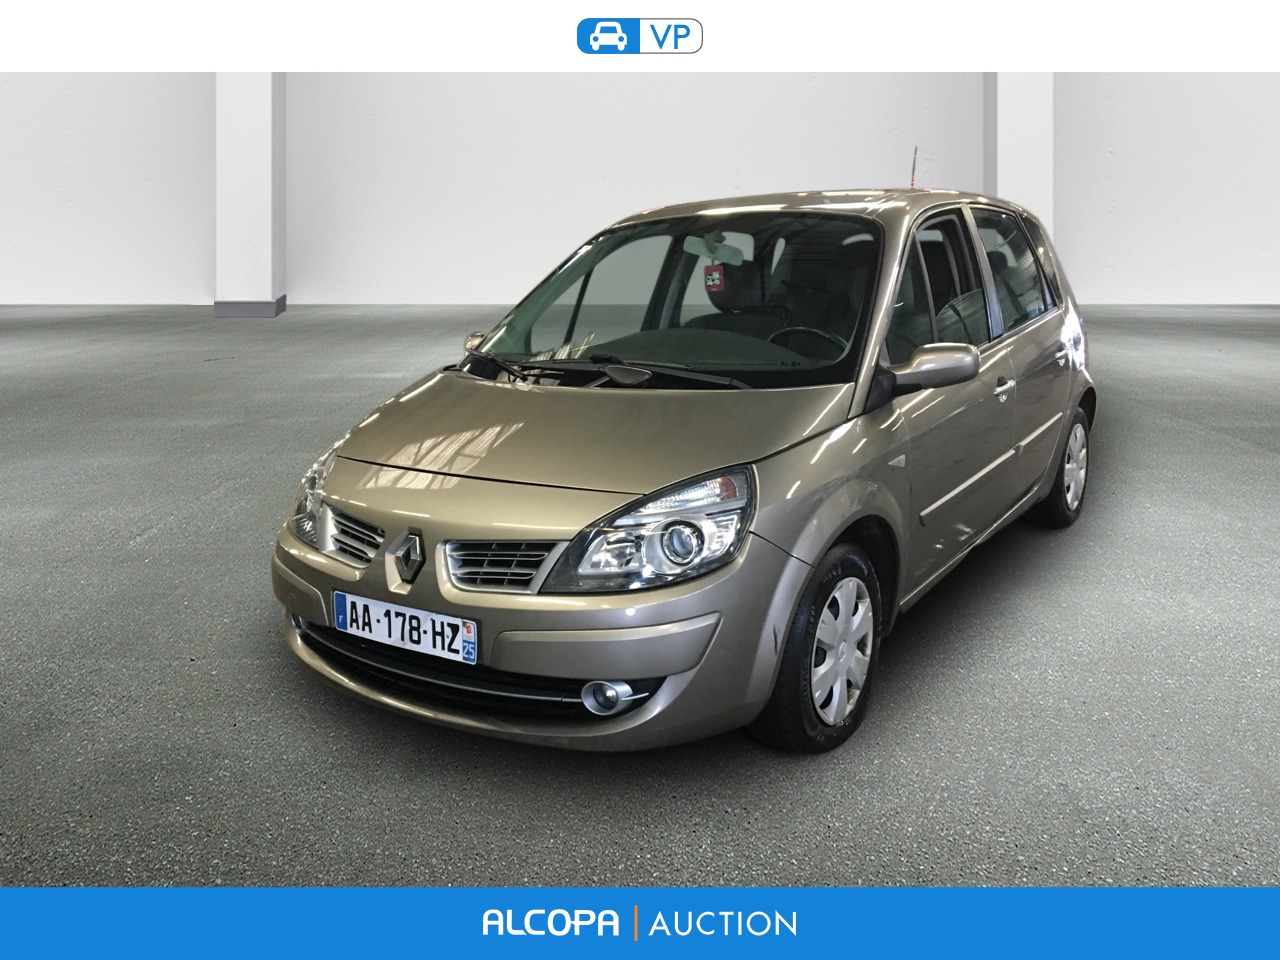 renault scenic ii scenic 1 5 dci 105 eco2 emotion alcopa auction. Black Bedroom Furniture Sets. Home Design Ideas